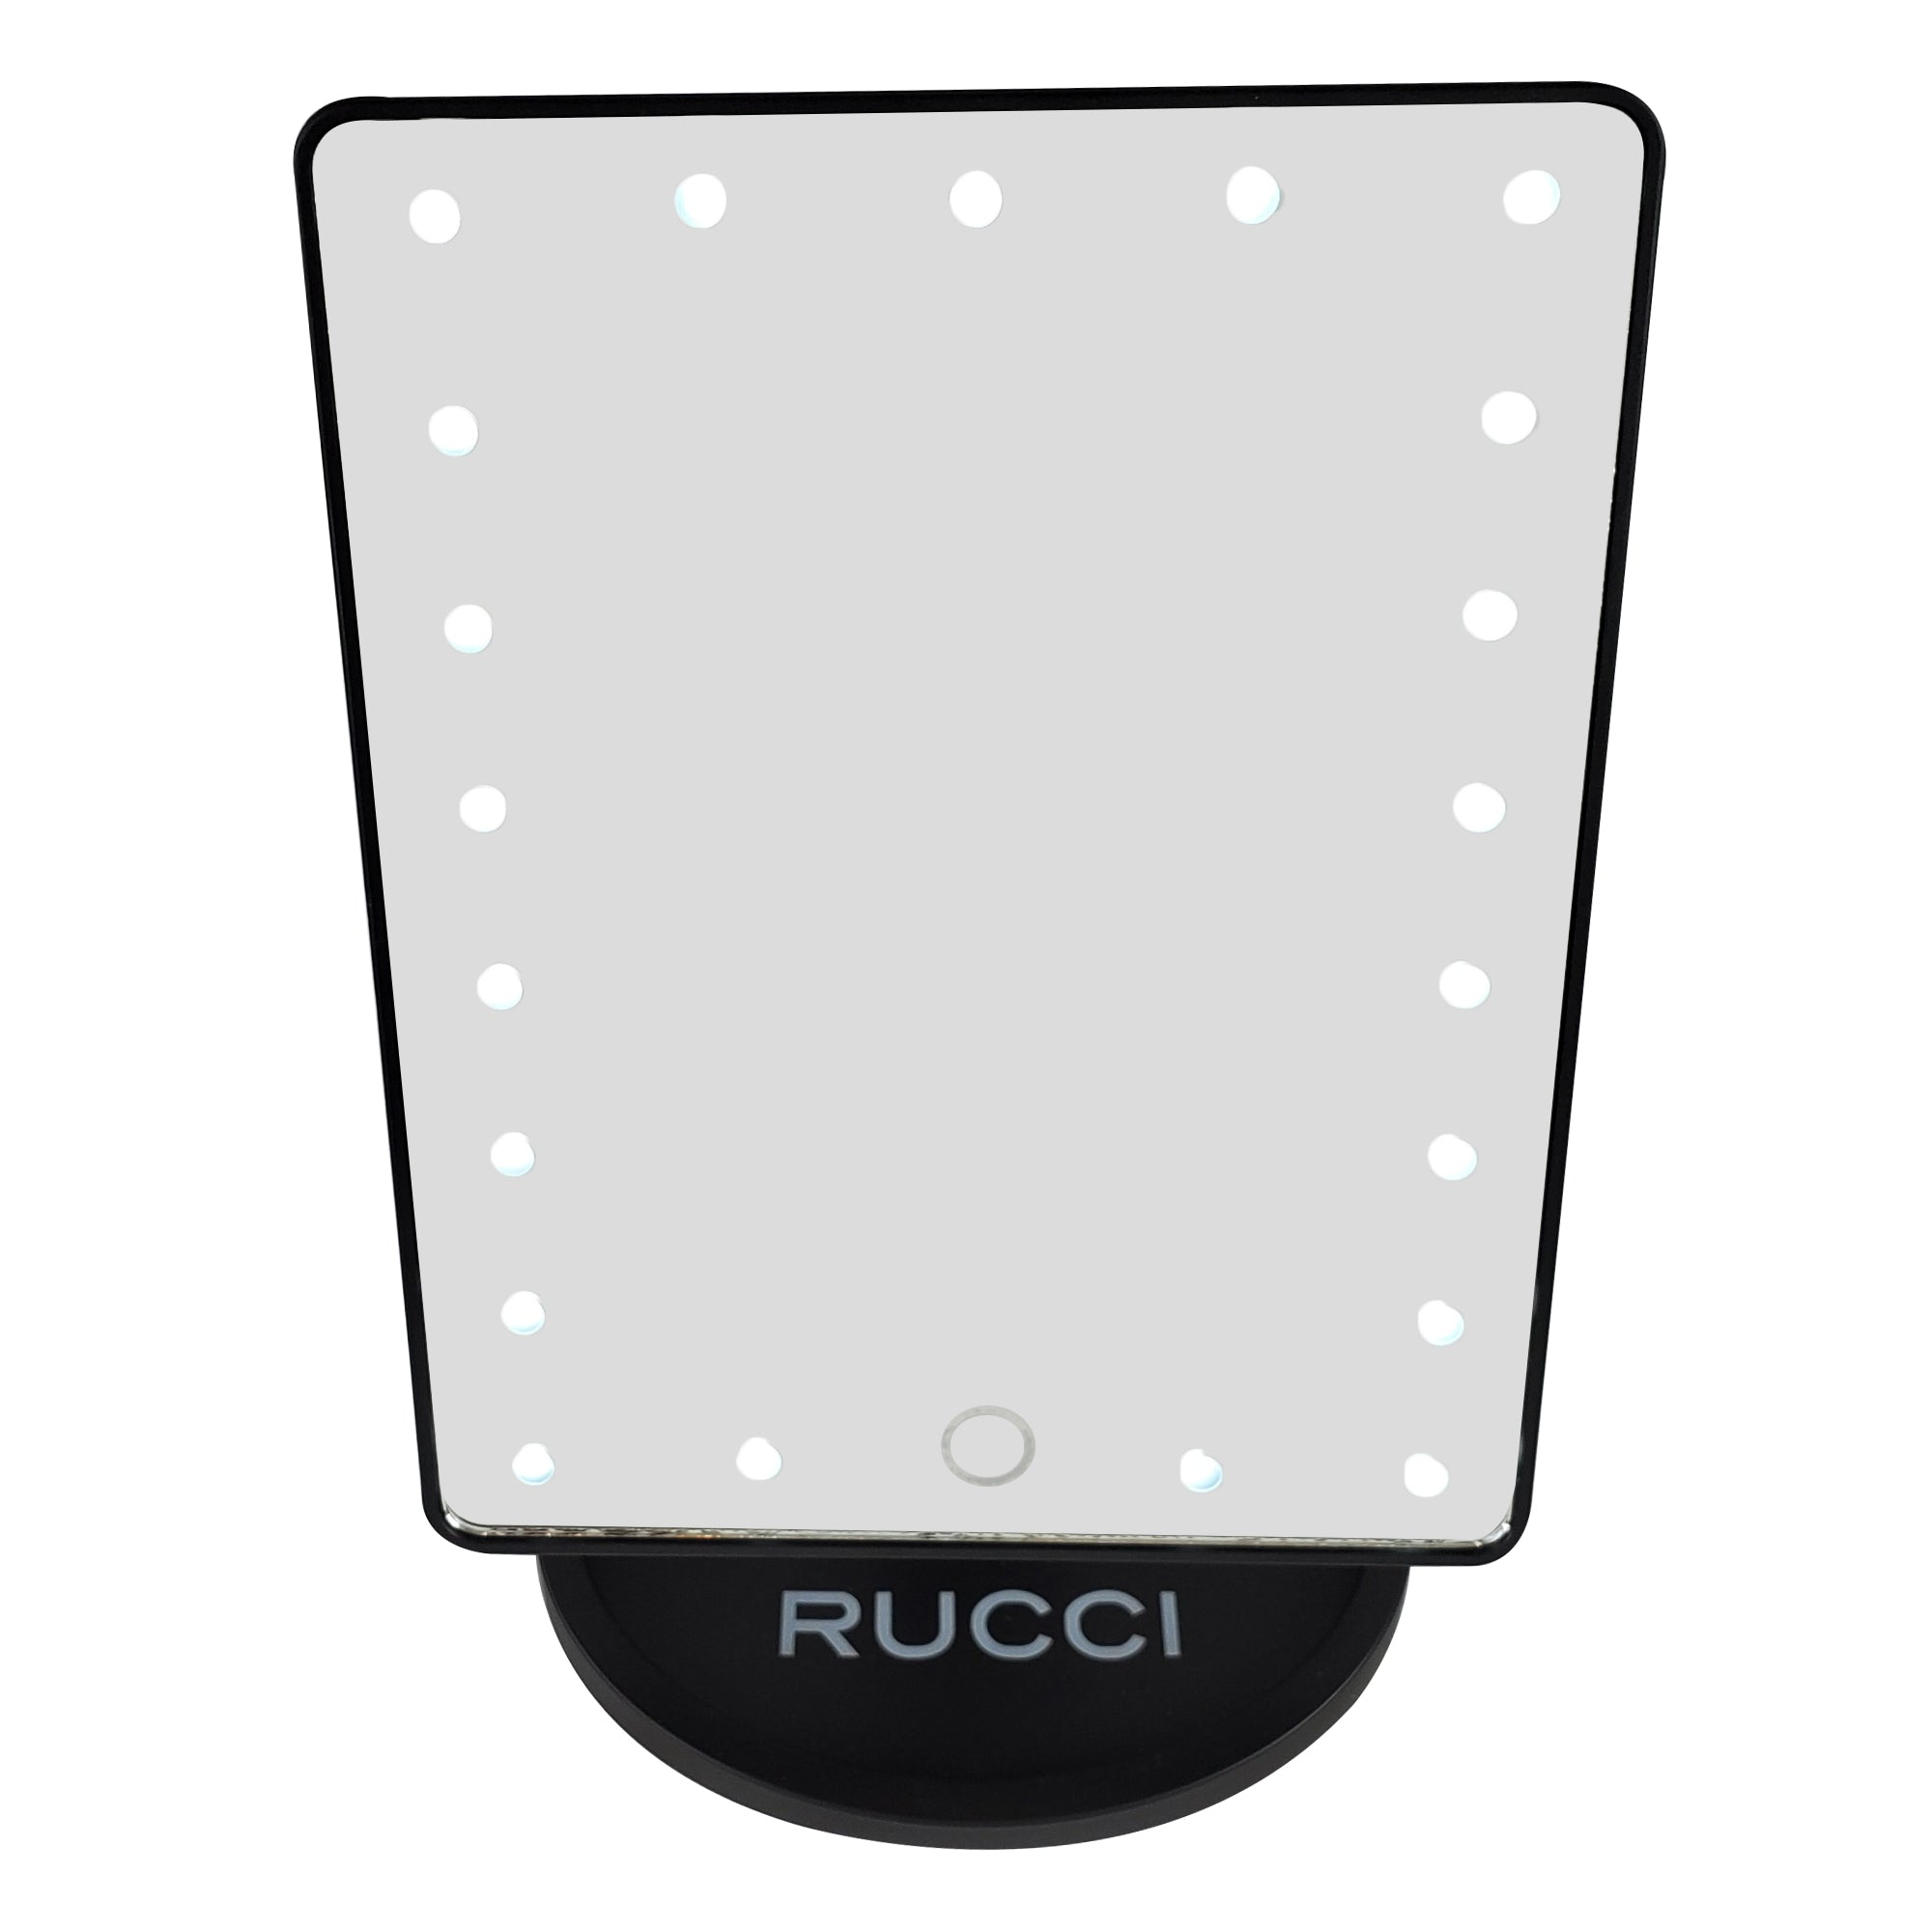 Rucci Lighted Vanity Makeup Mirror With 22 LEDs